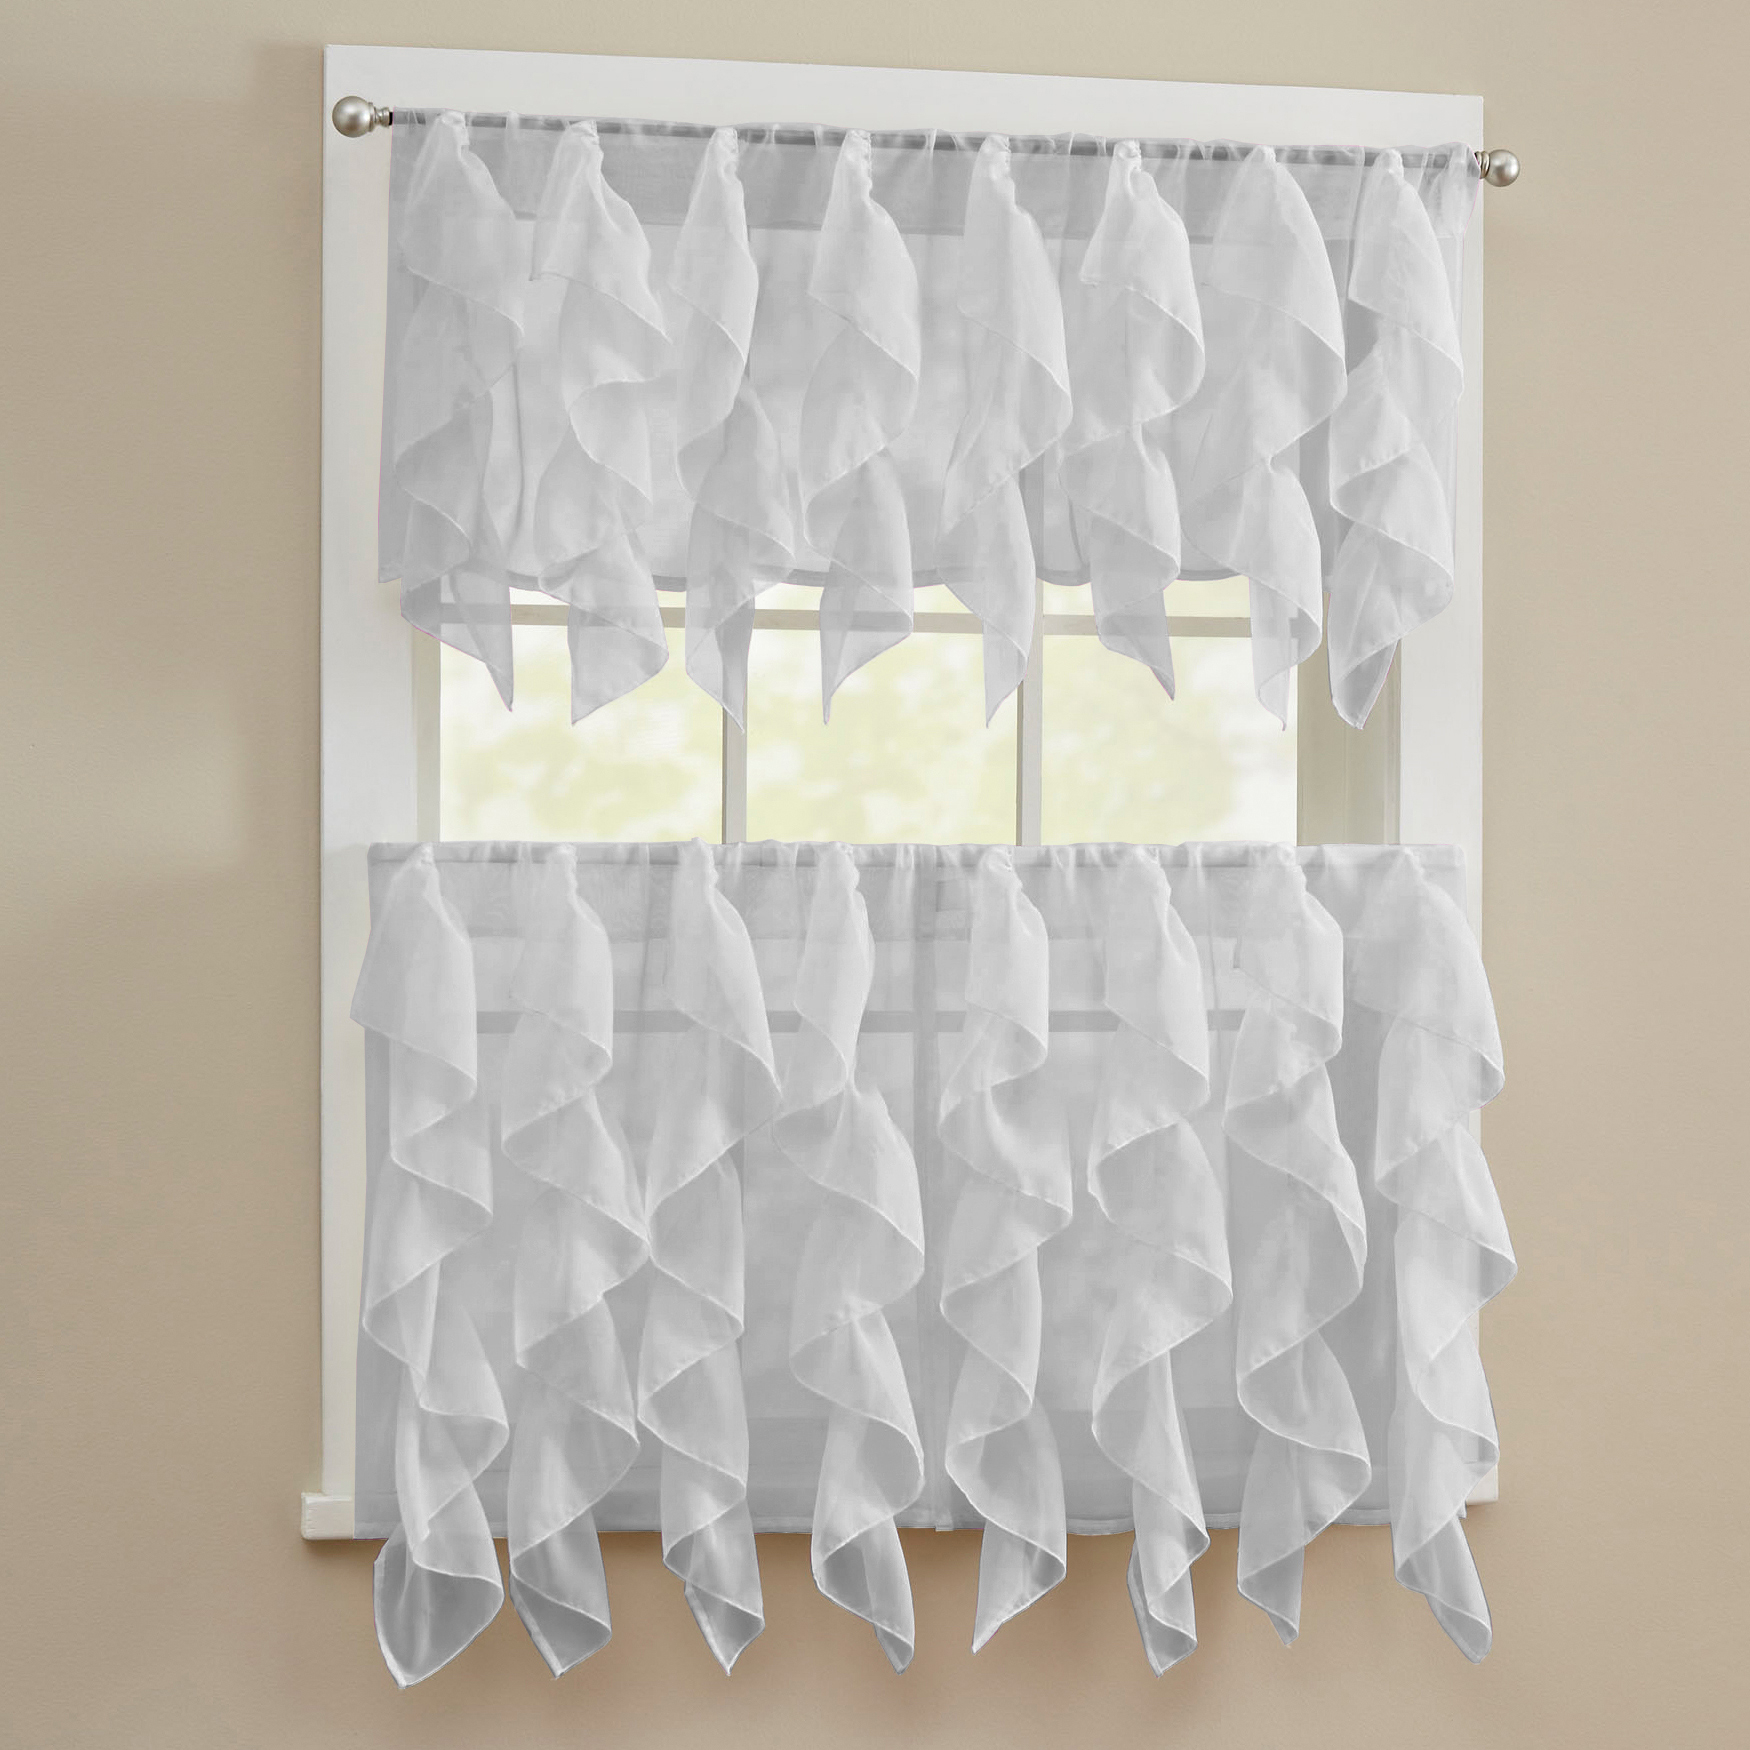 Details About Sheer Voile Vertical Ruffle Window Kitchen Curtain Tiers Or Valance Silver Throughout Silver Vertical Ruffled Waterfall Valance And Curtain Tiers (View 6 of 20)